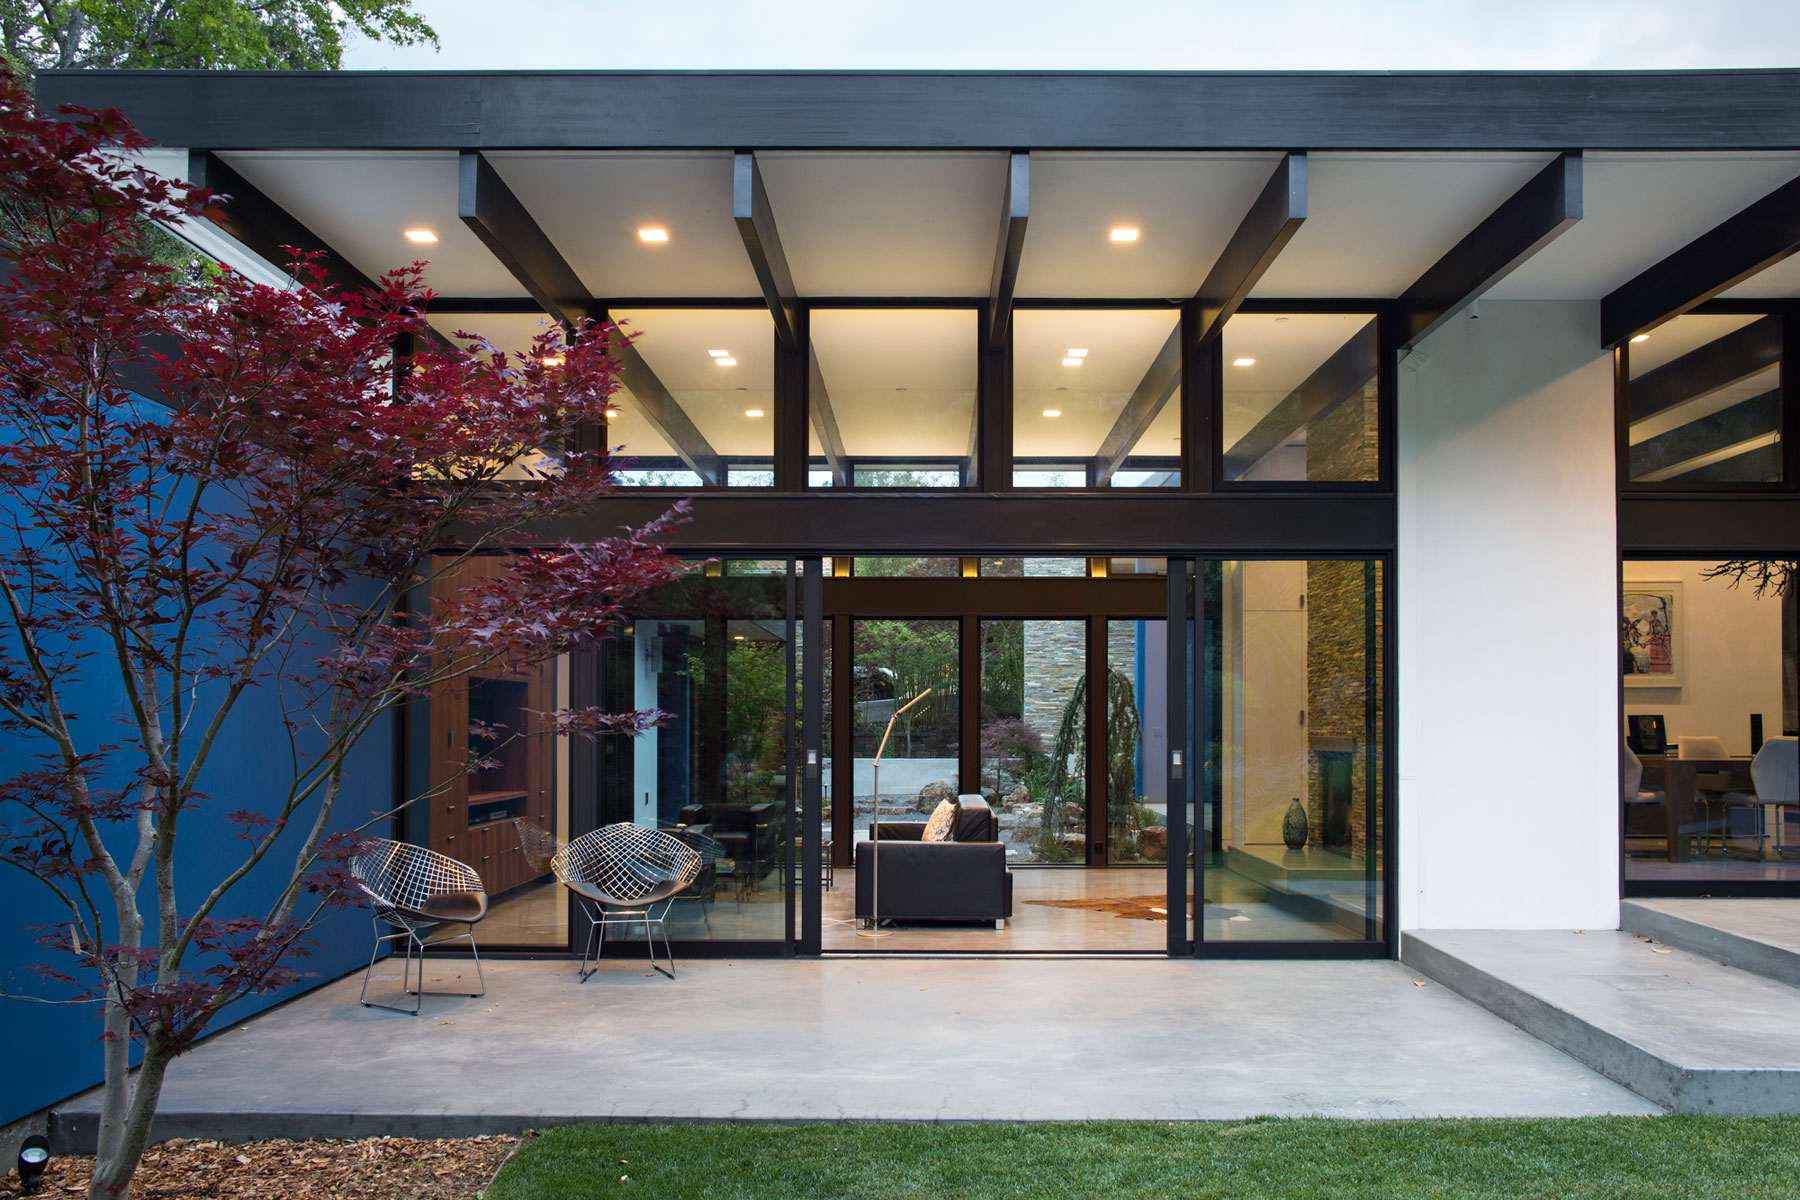 Modern atrium house by klopf architecture for House plans with atrium in center